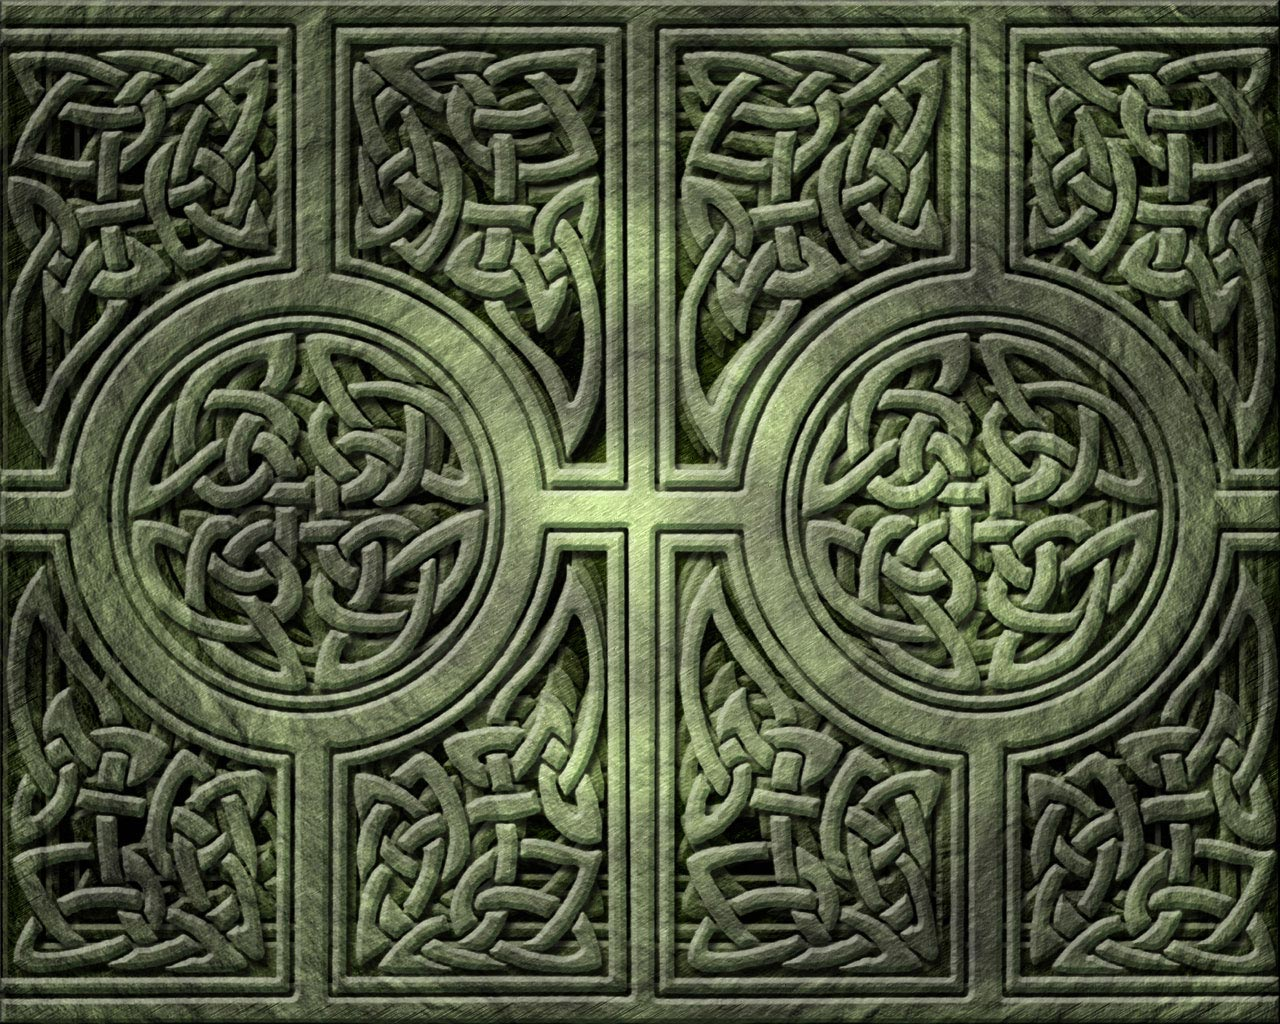 Bitcoin Network Decorated with Celtic Knotwork